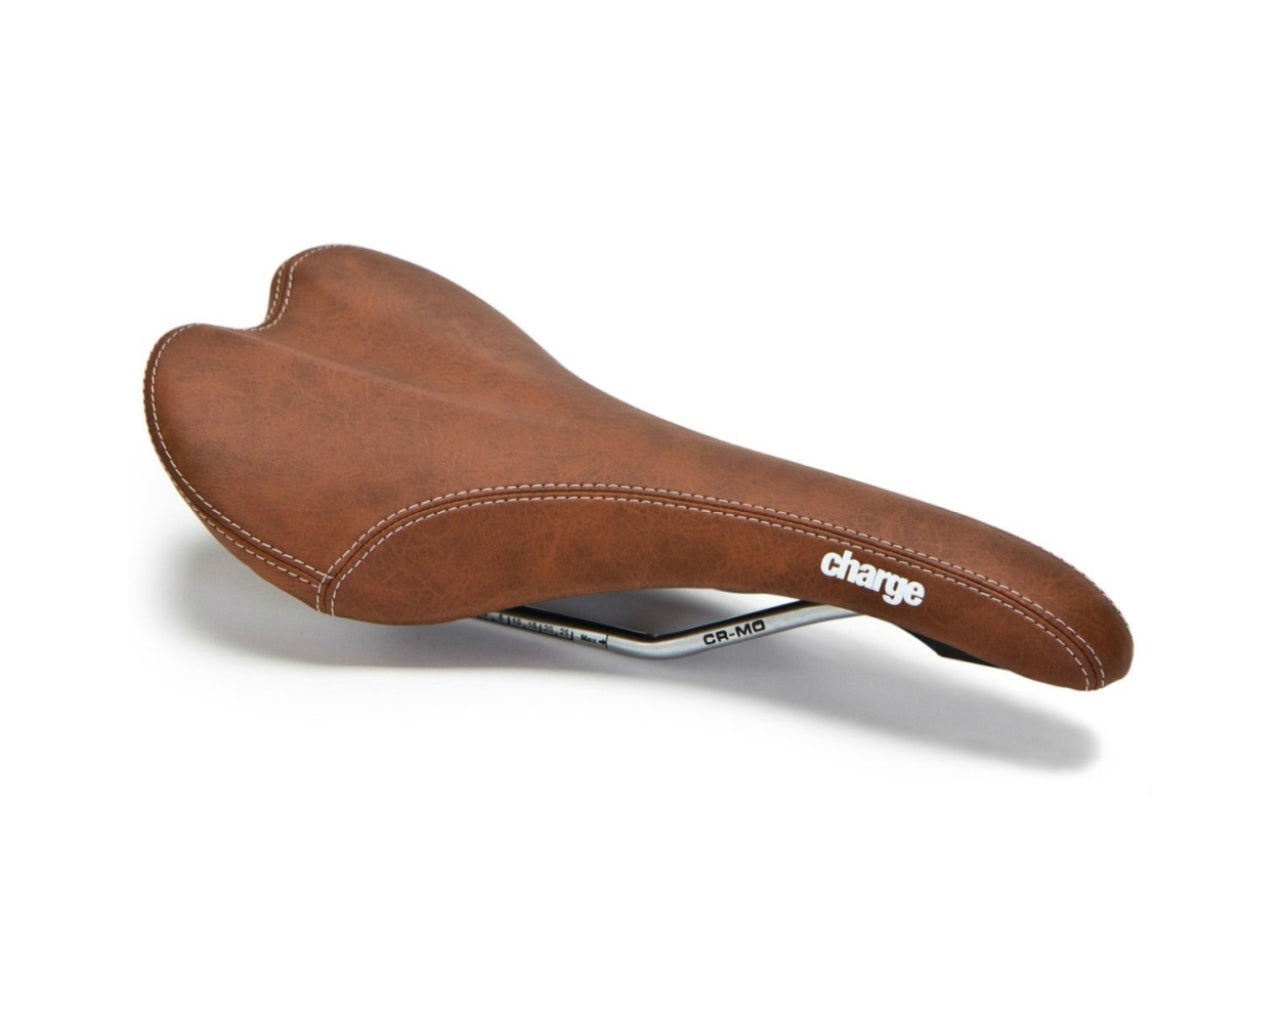 Charge Spoon Saddle Brown